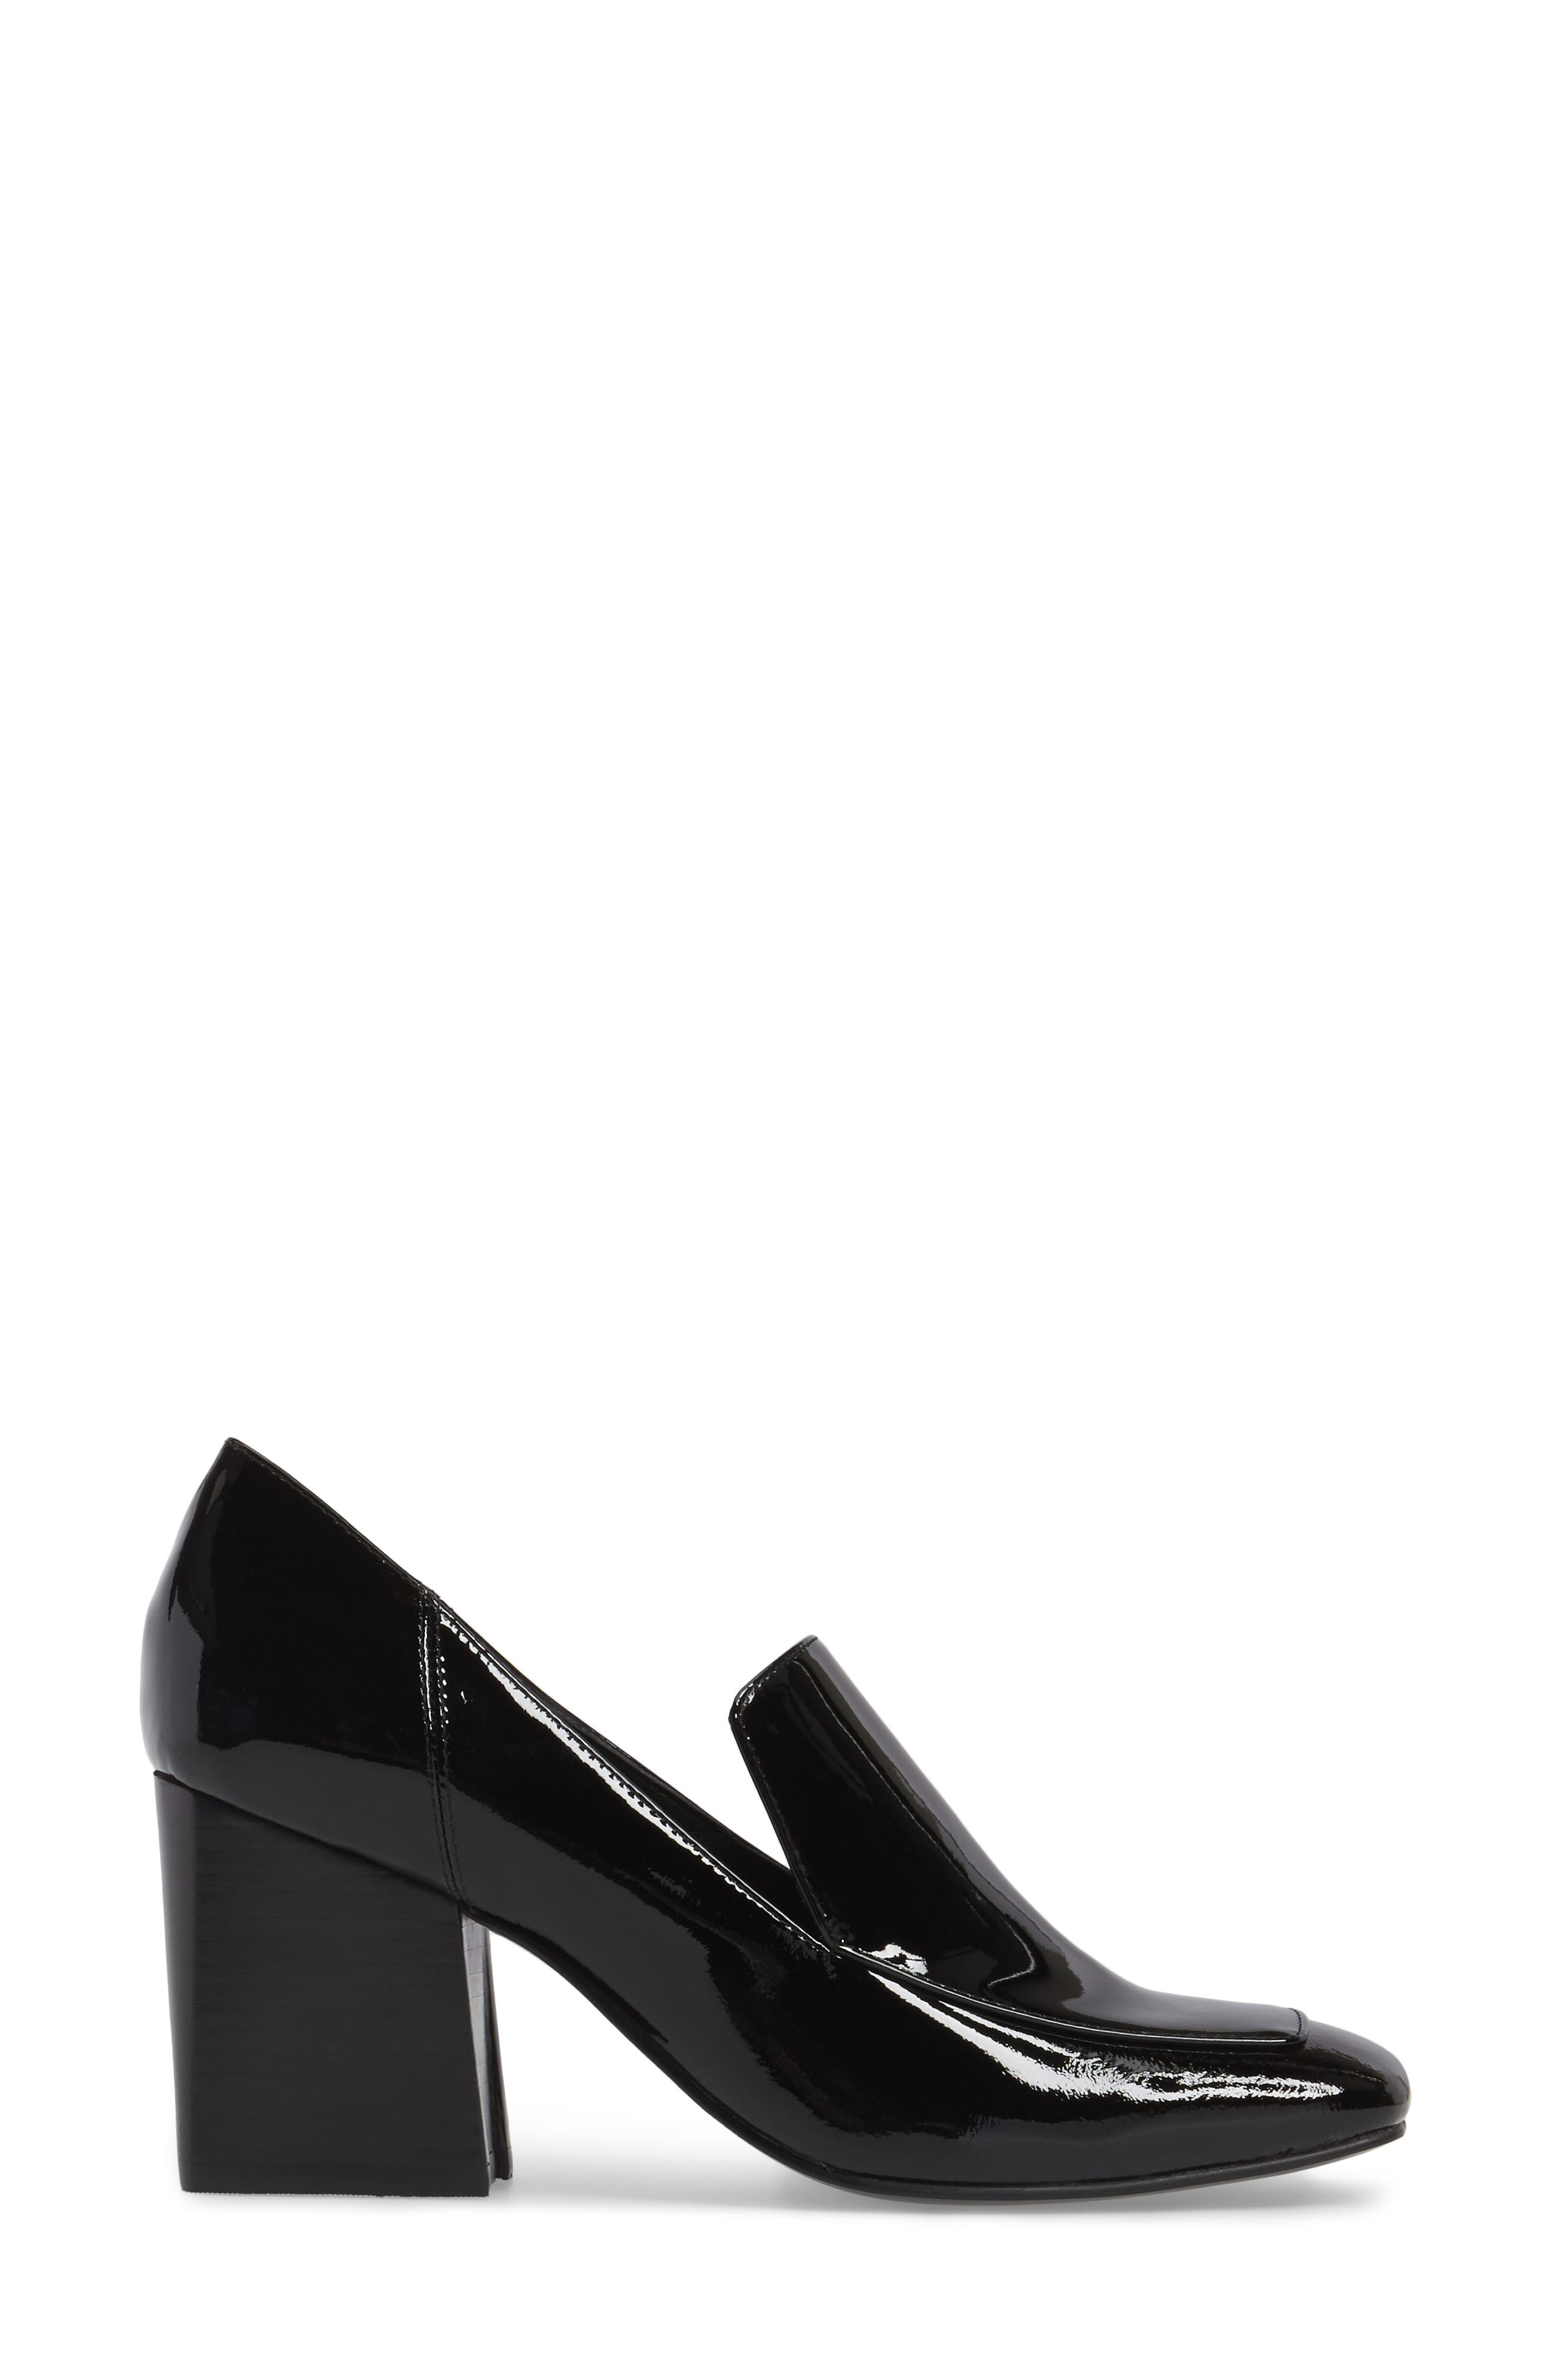 Marlo Loafer Pump,                             Alternate thumbnail 12, color,